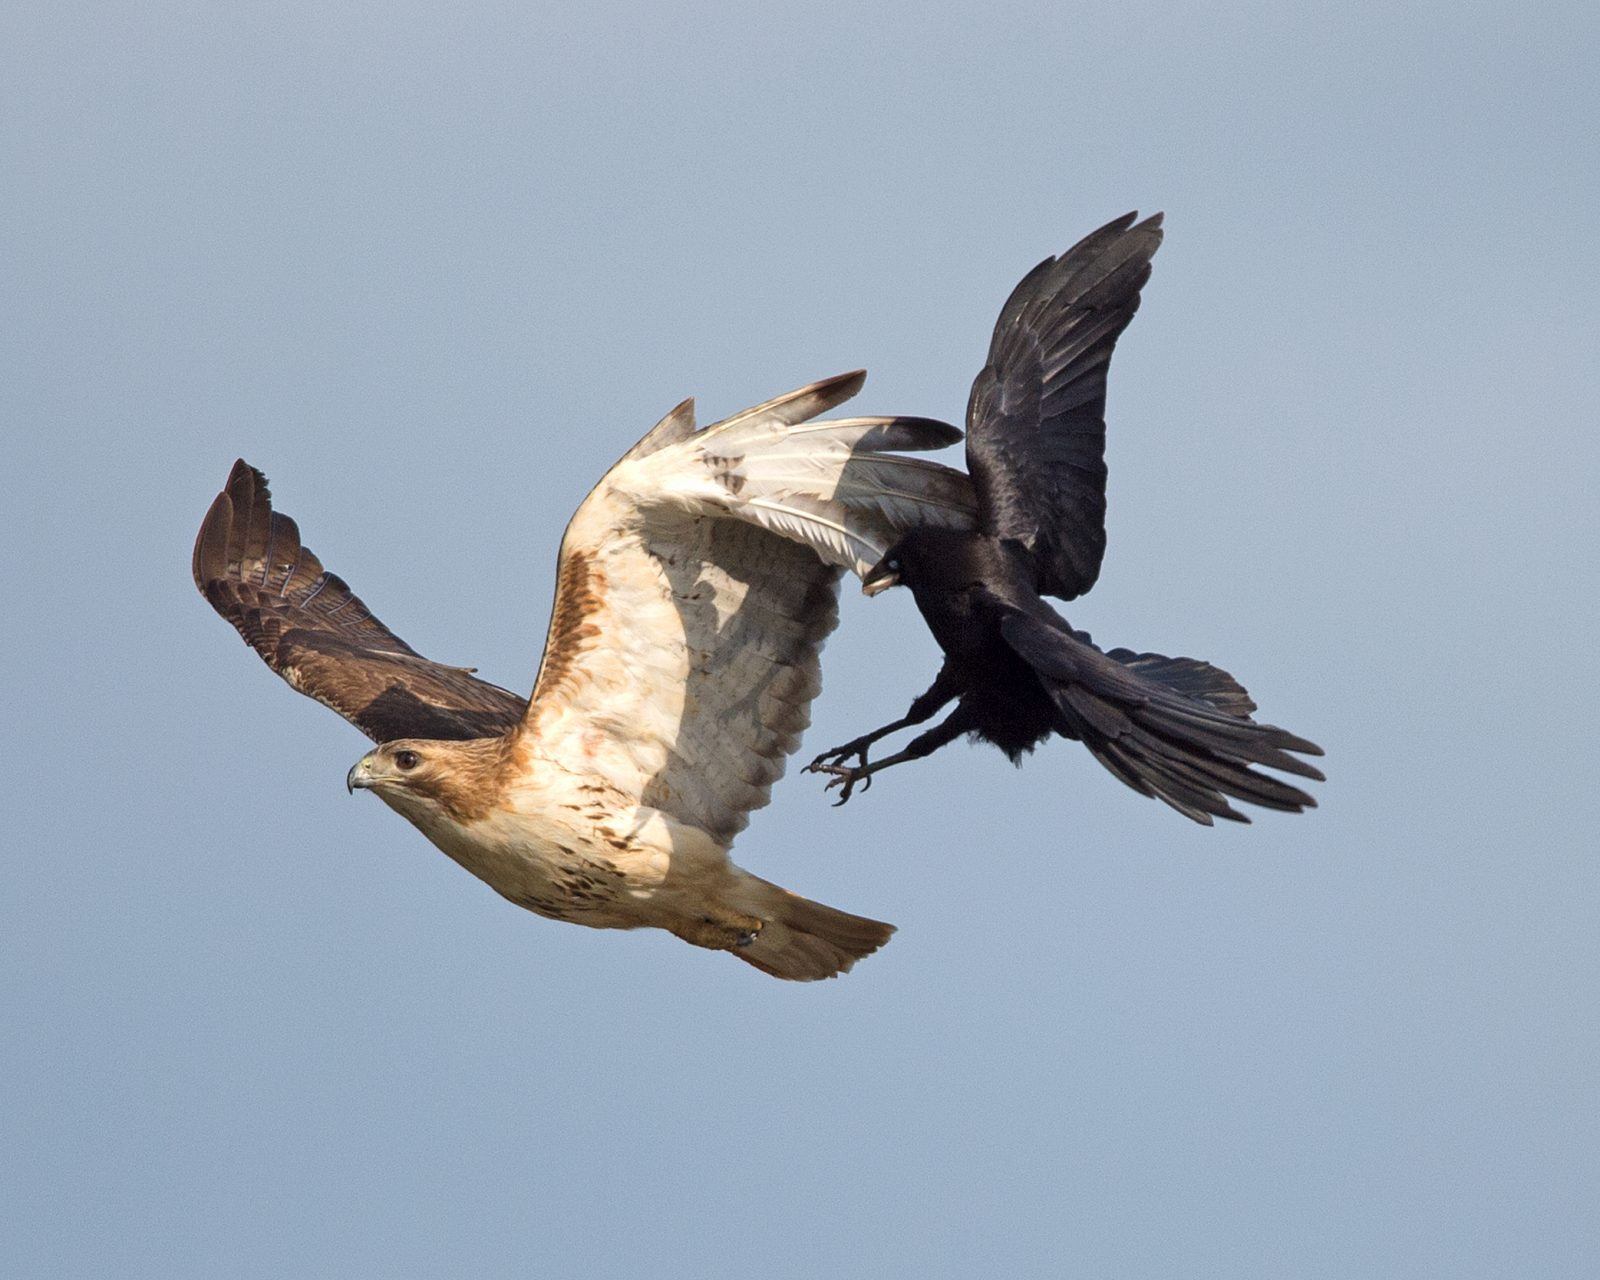 American Crow Seizing the Wing of a Red-tailed Hawk